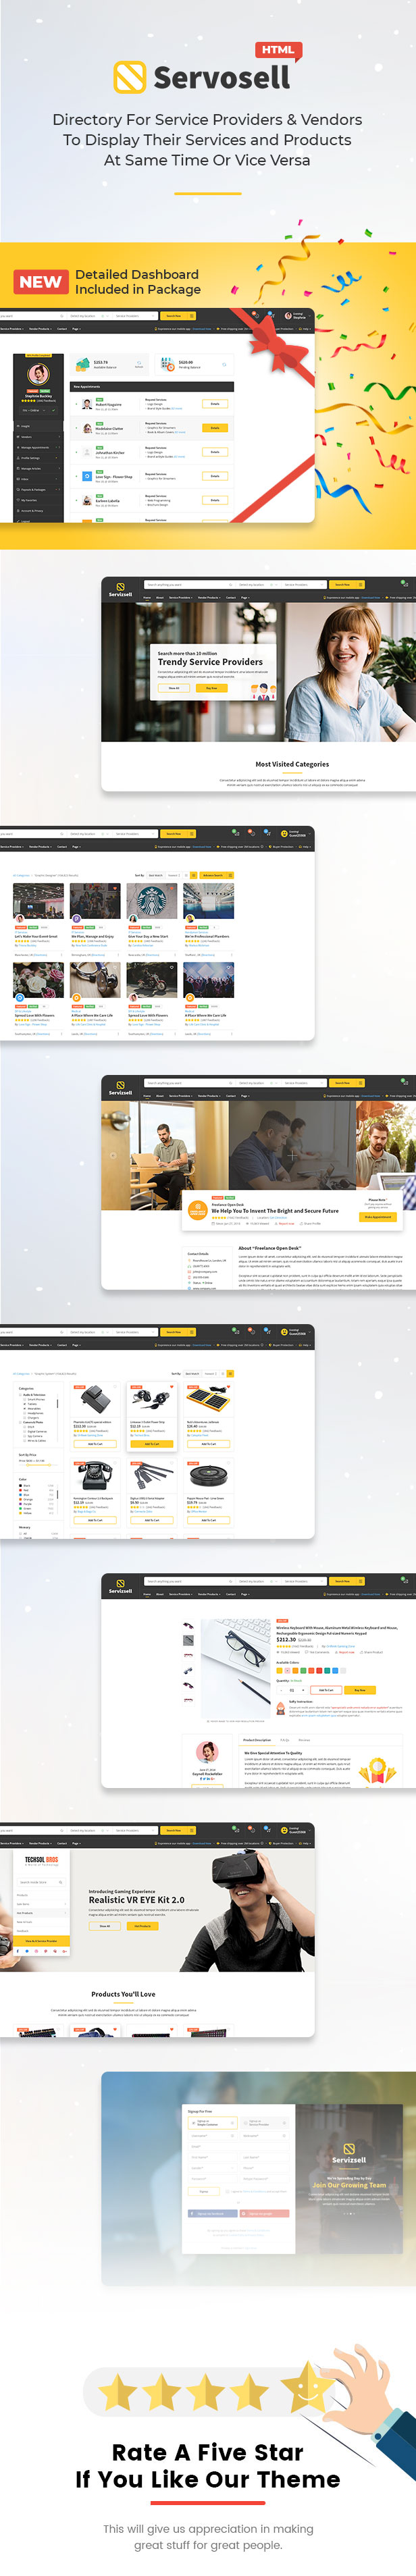 Servosell - Service Providers and Vendors Directory Template - 4